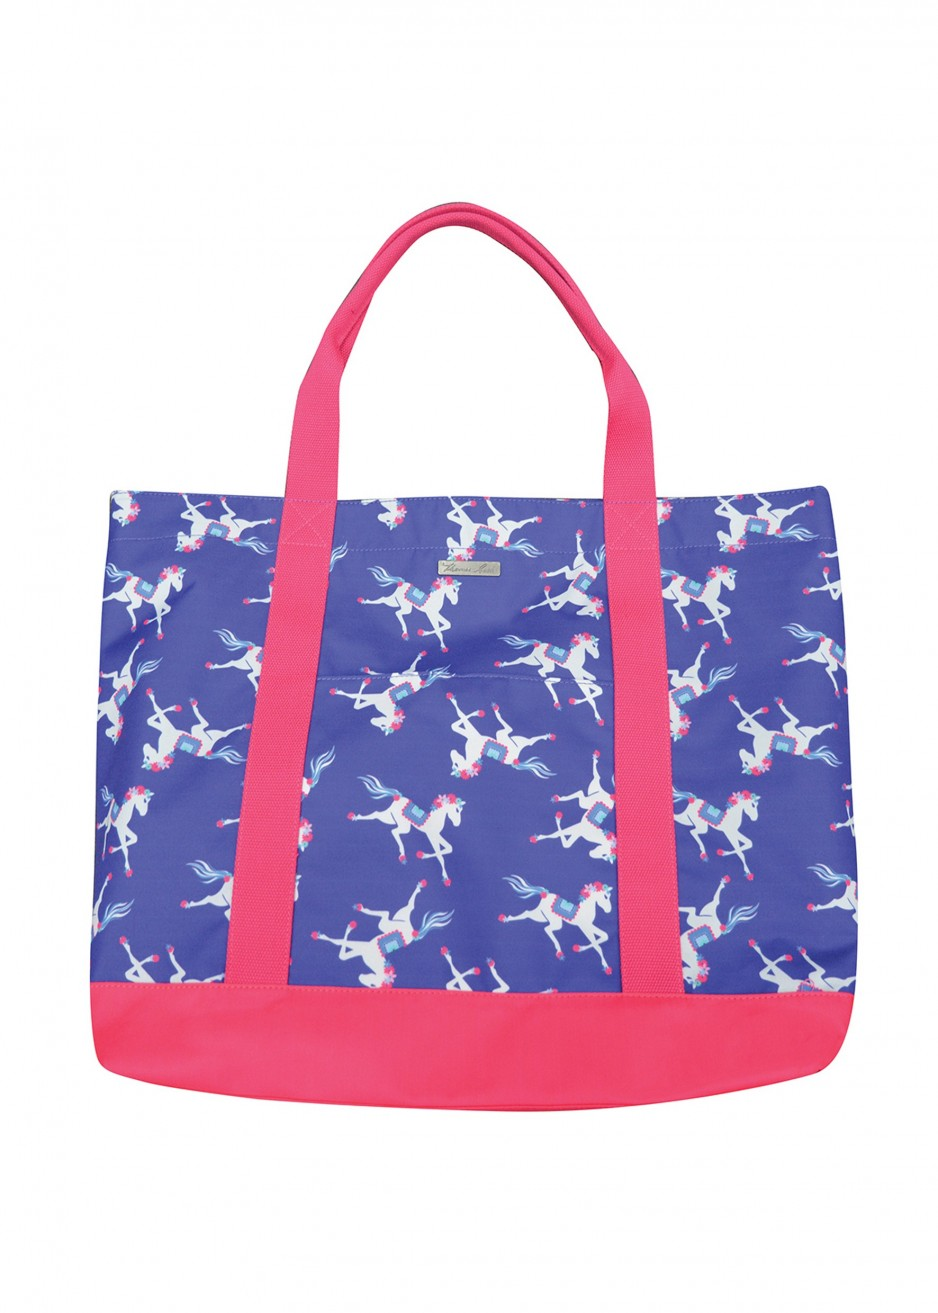 HORSES PRINT EVERYDAY TOTE BAG